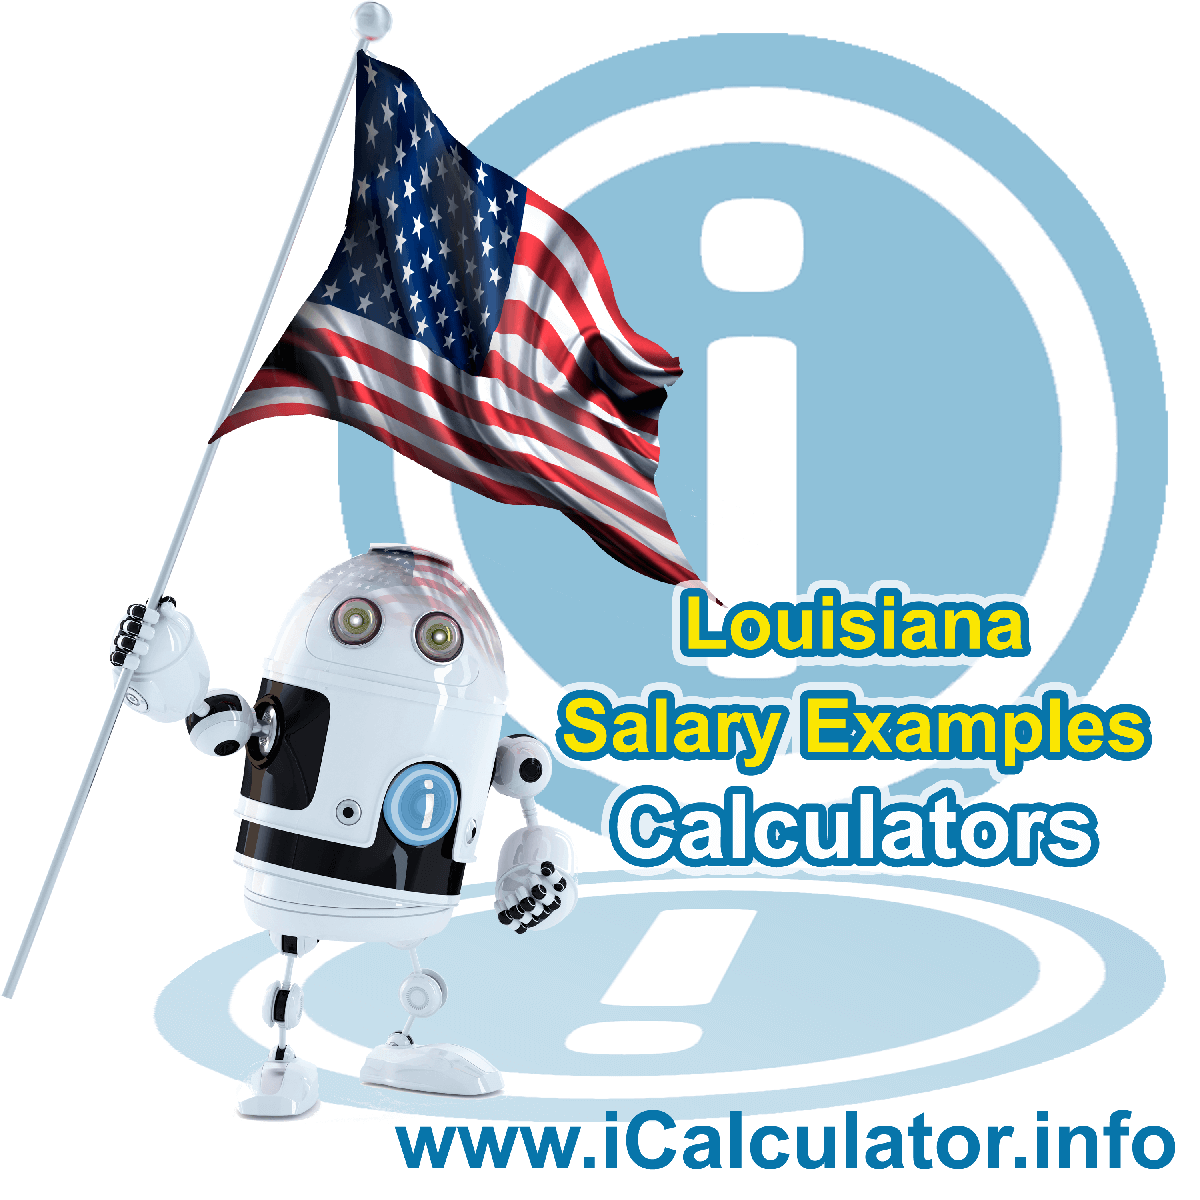 Louisiana Salary Example for $90.00 in 2020 | iCalculator | $90.00 salary example for employee and employer paying Louisiana State tincome taxes. Detailed salary after tax calculation including Louisiana State Tax, Federal State Tax, Medicare Deductions, Social Security, Capital Gains and other income tax and salary deductions complete with supporting Louisiana state tax tables